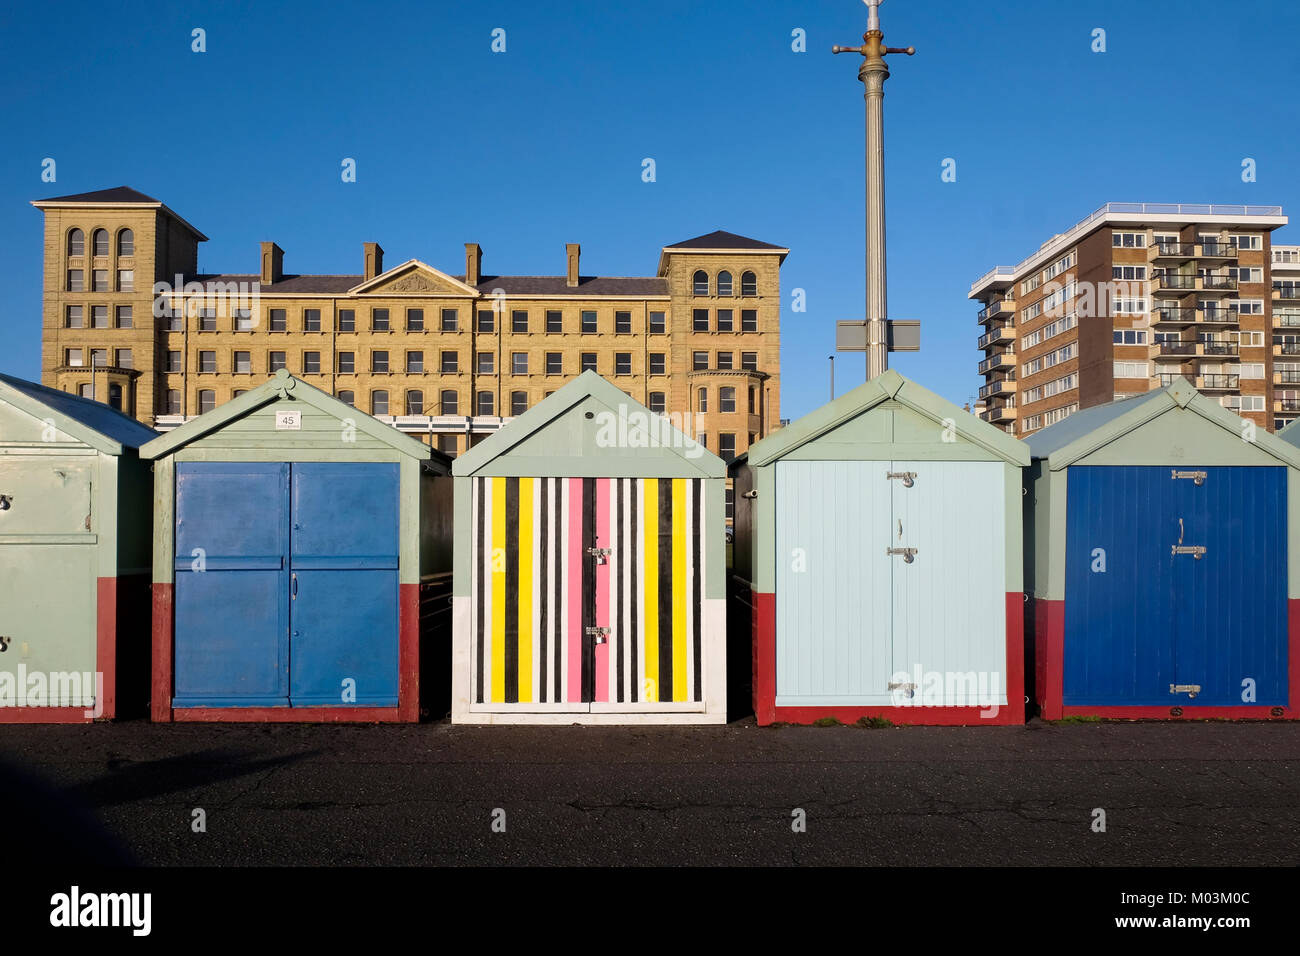 Brighton seafront five beach huts, four with blue and green doors the fifth one in the middle has a multi coloured - Stock Image